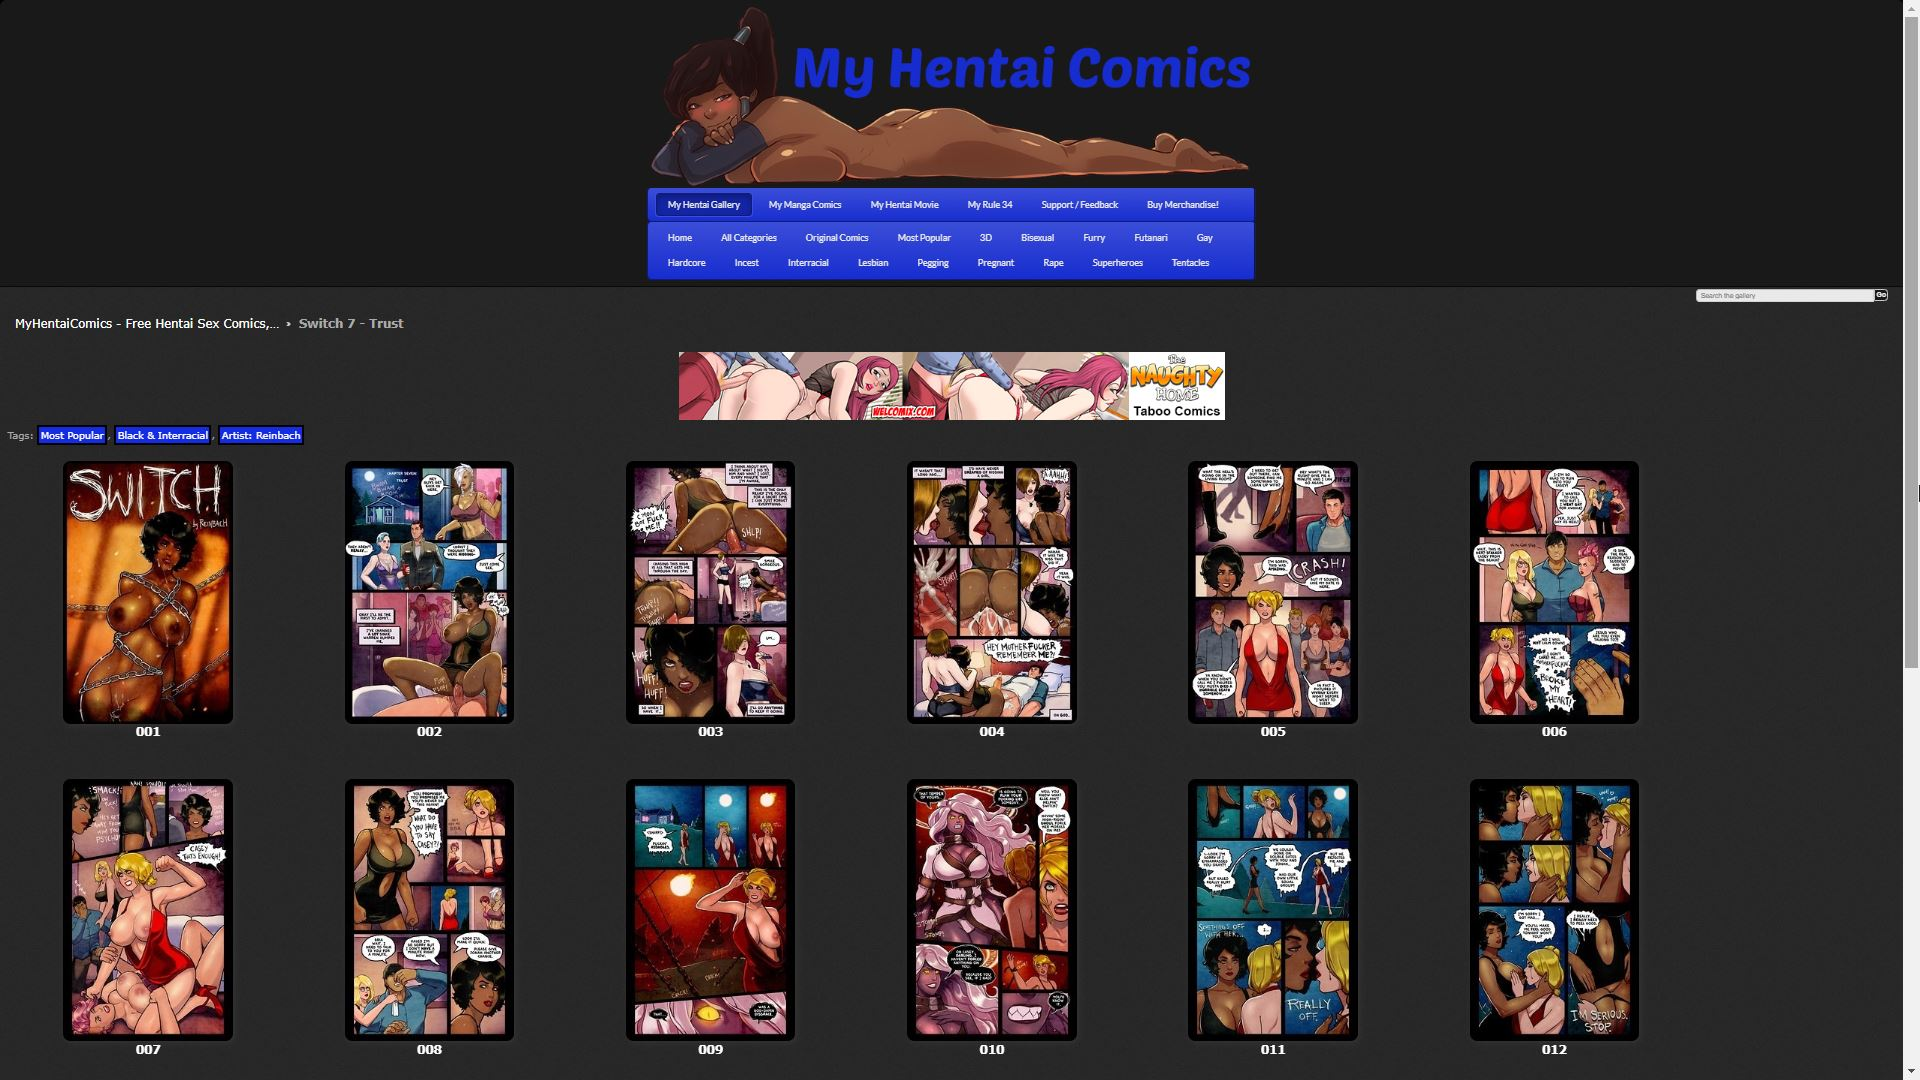 My Hentai Comics Switch 7 - Trust